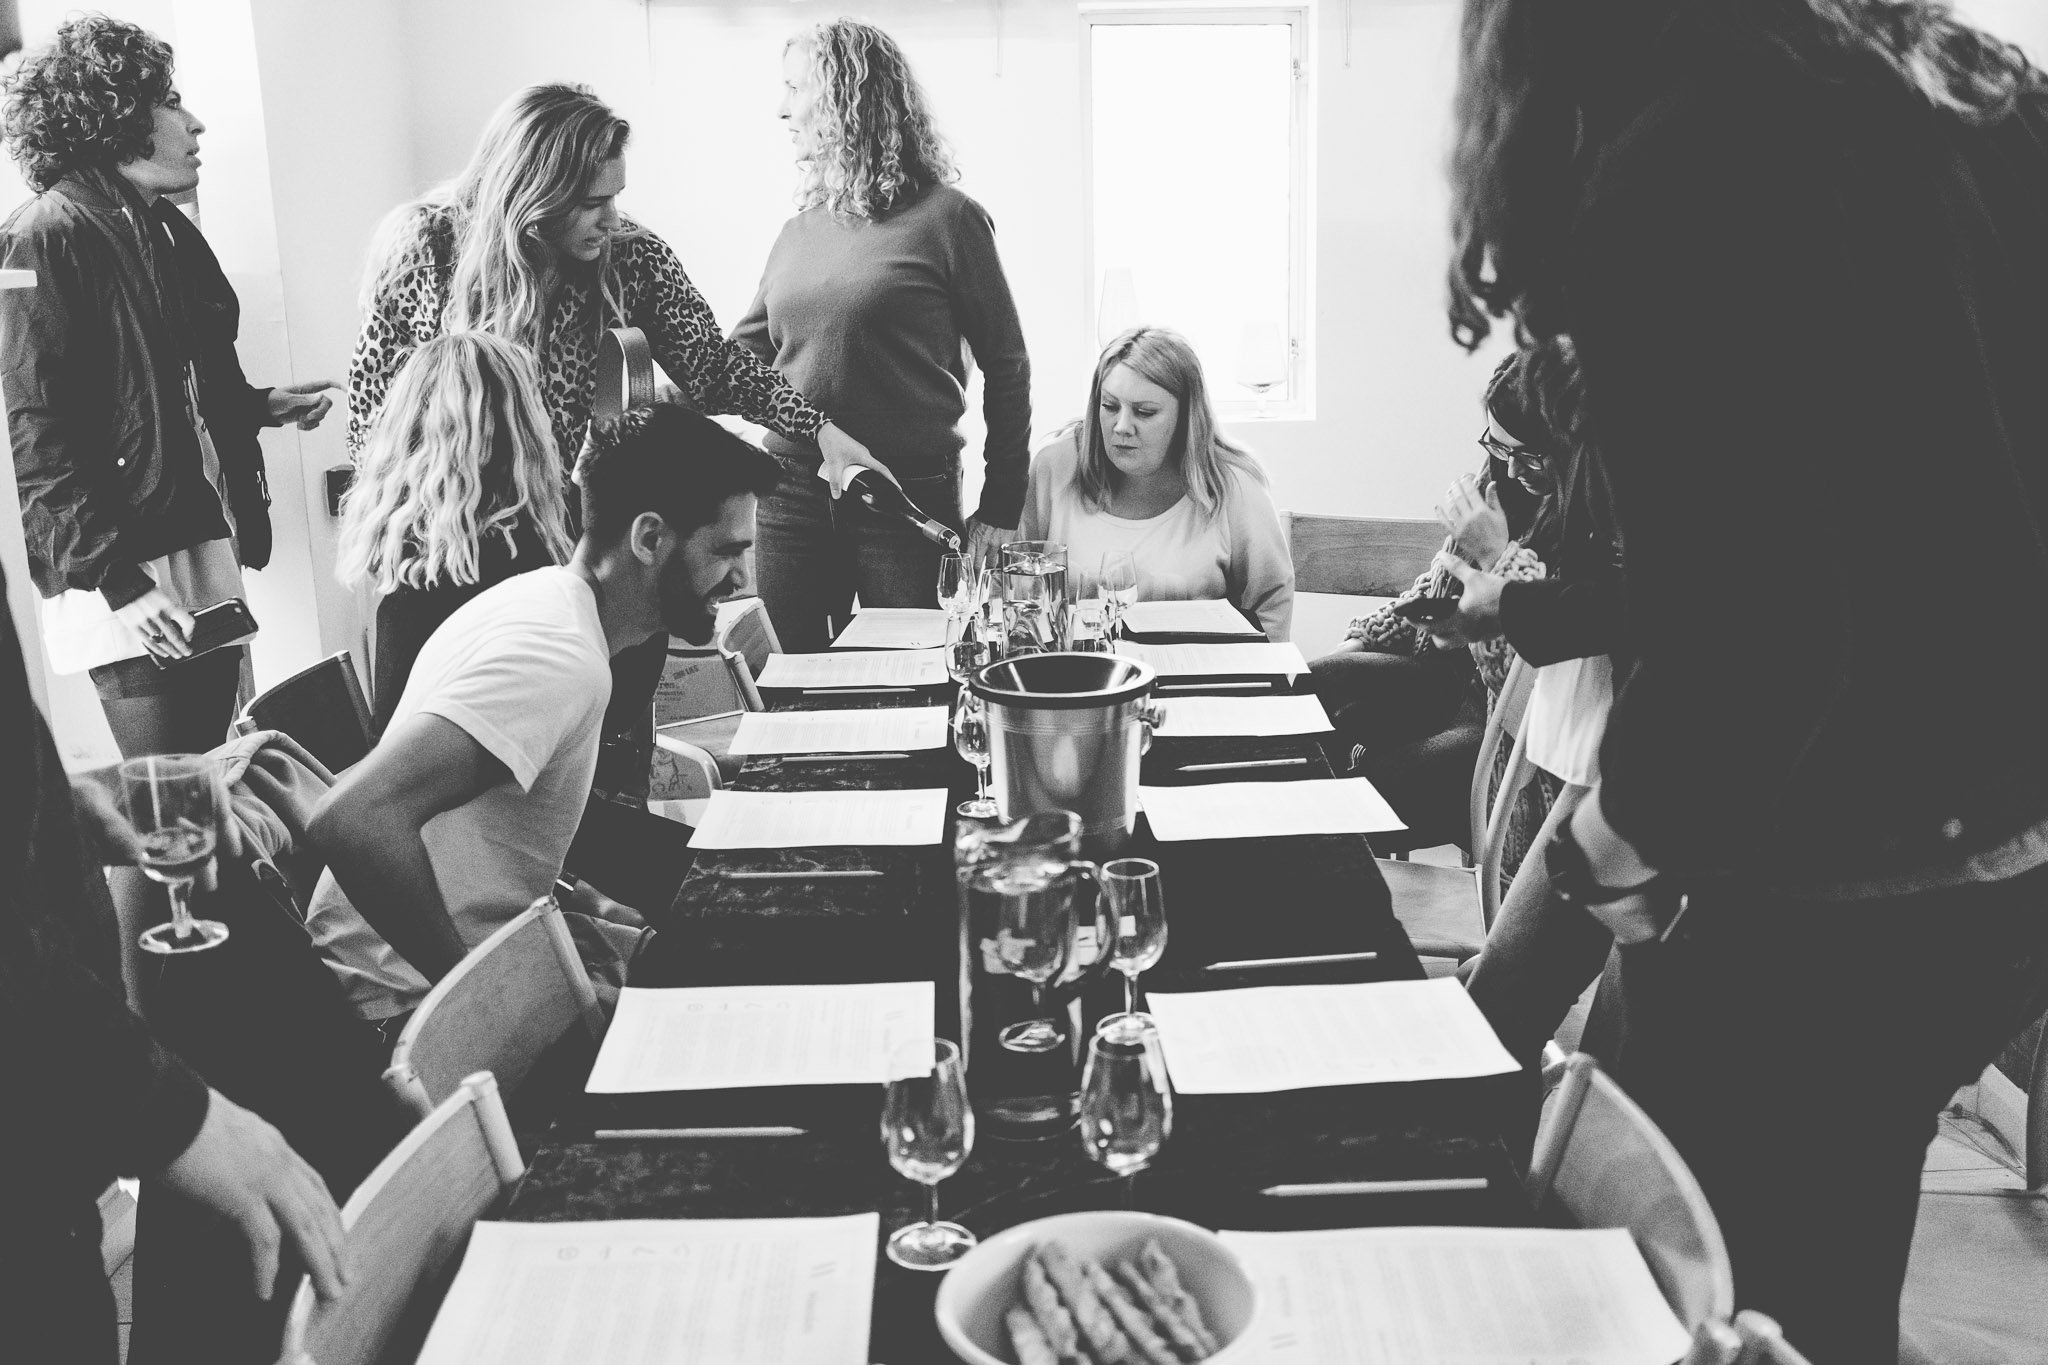 Resident's take their seat at a table at Winecdote, Netil House. Photography by thatthingyoupluck.